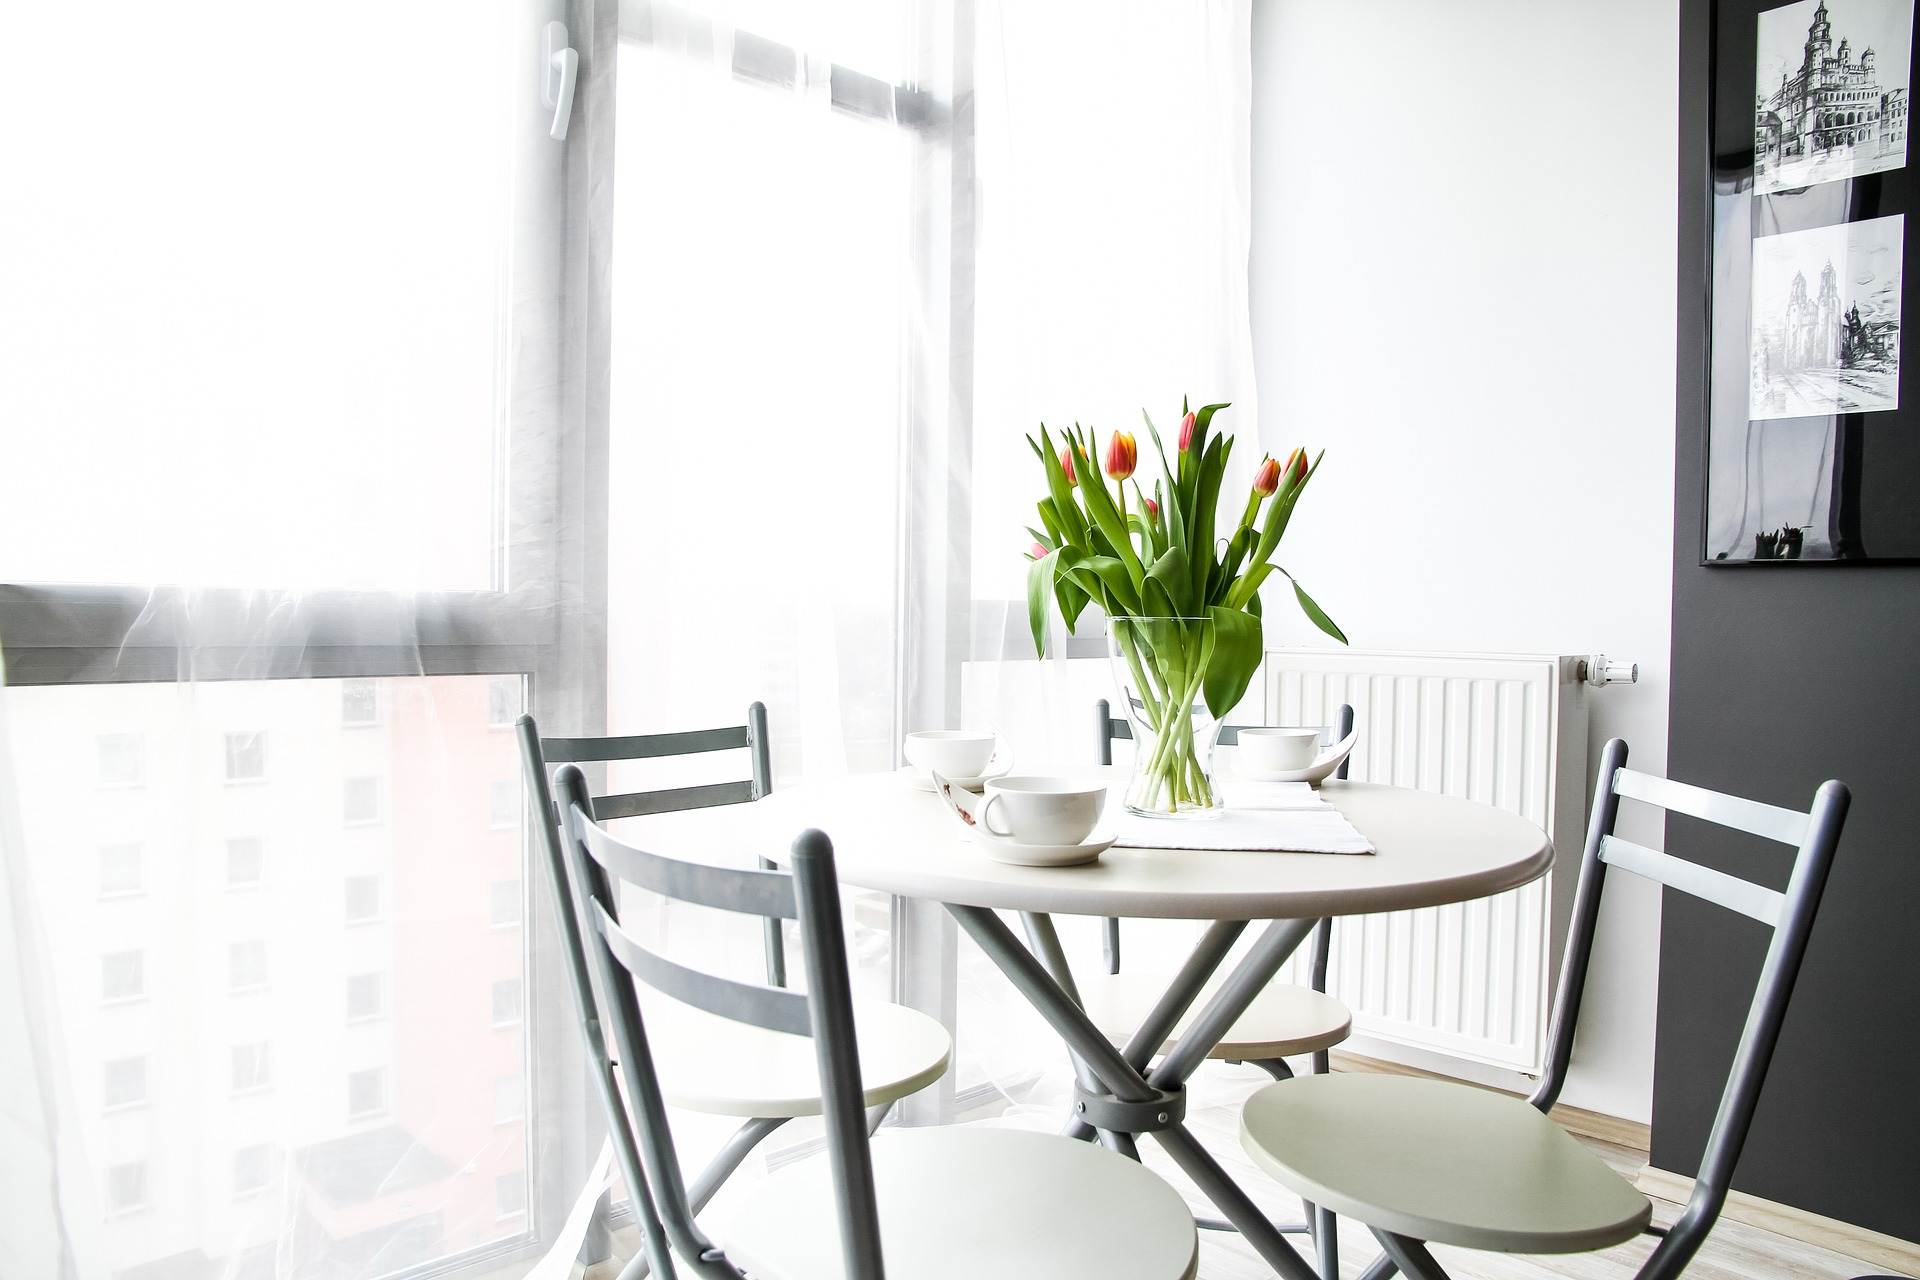 Kitchen table and flowers